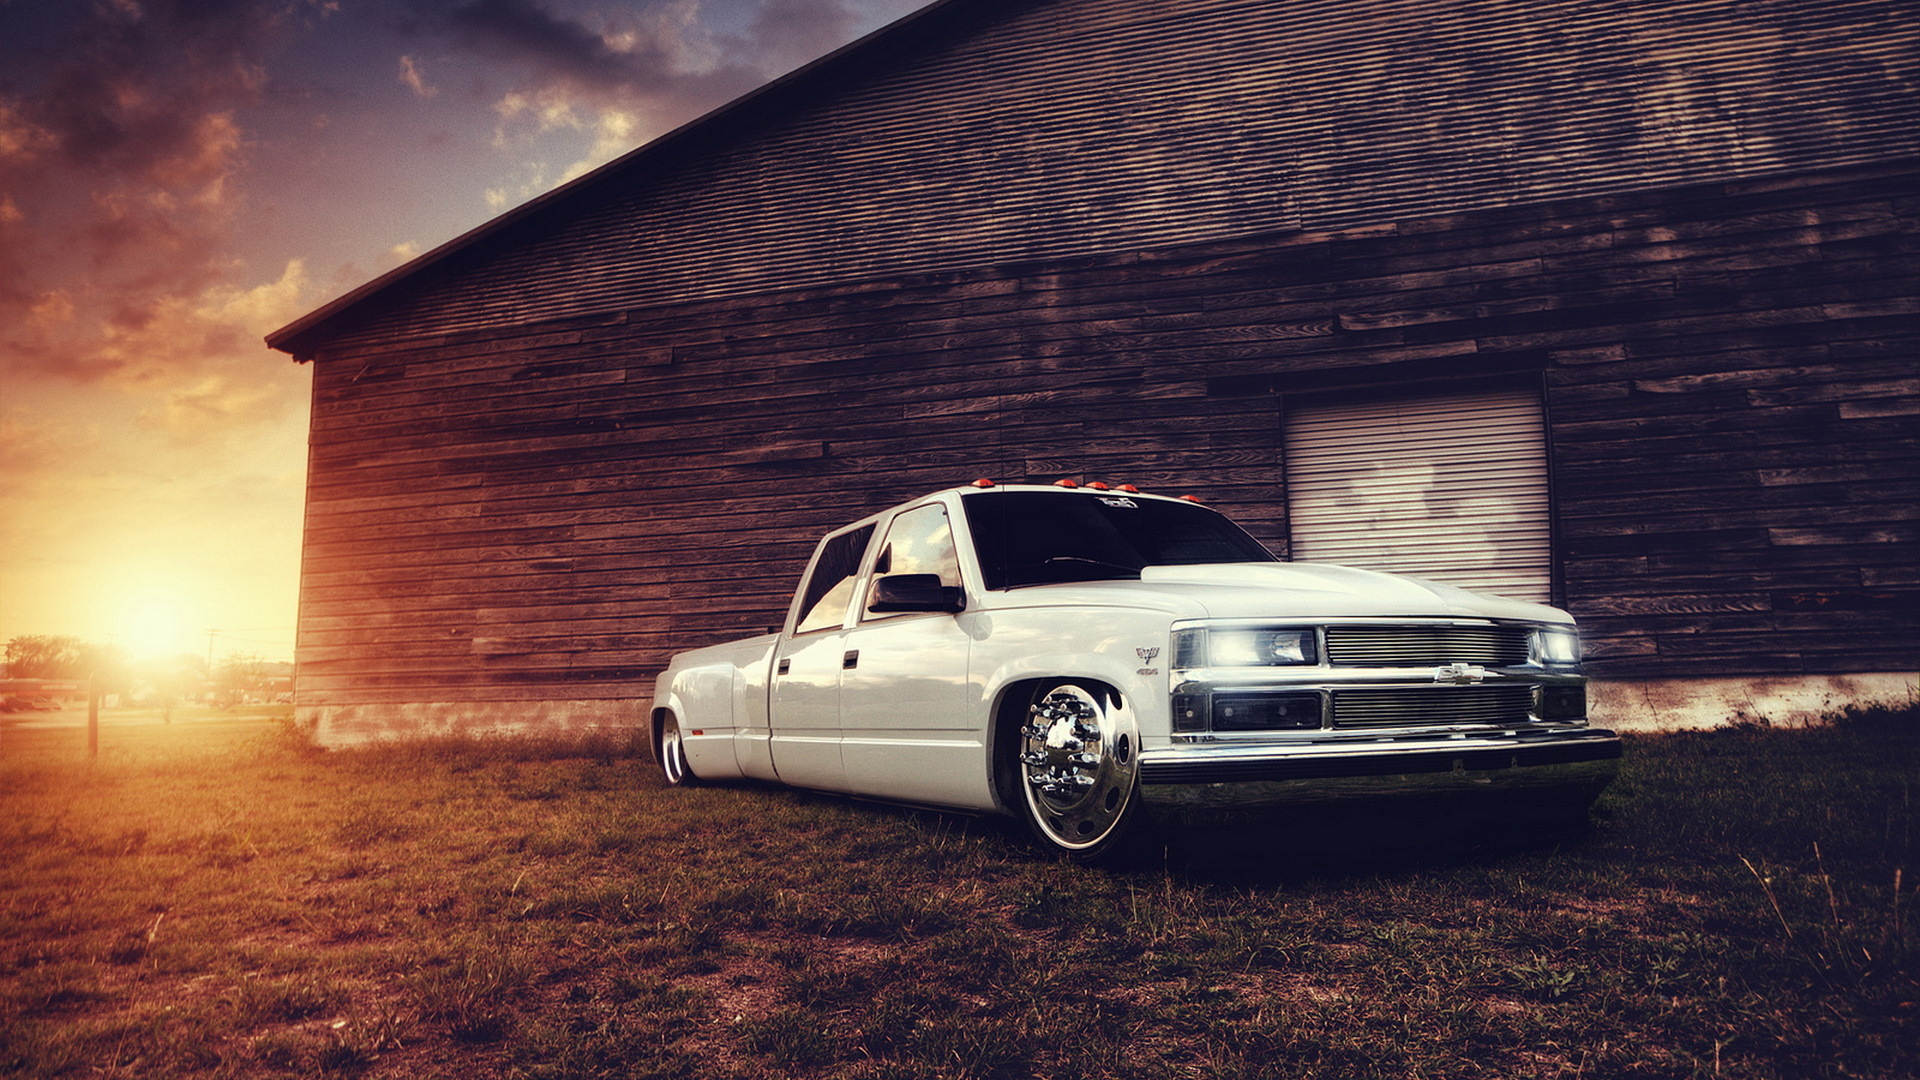 Chevrolet truck tuning white building lowrider sunset wallpaper 1920x1080